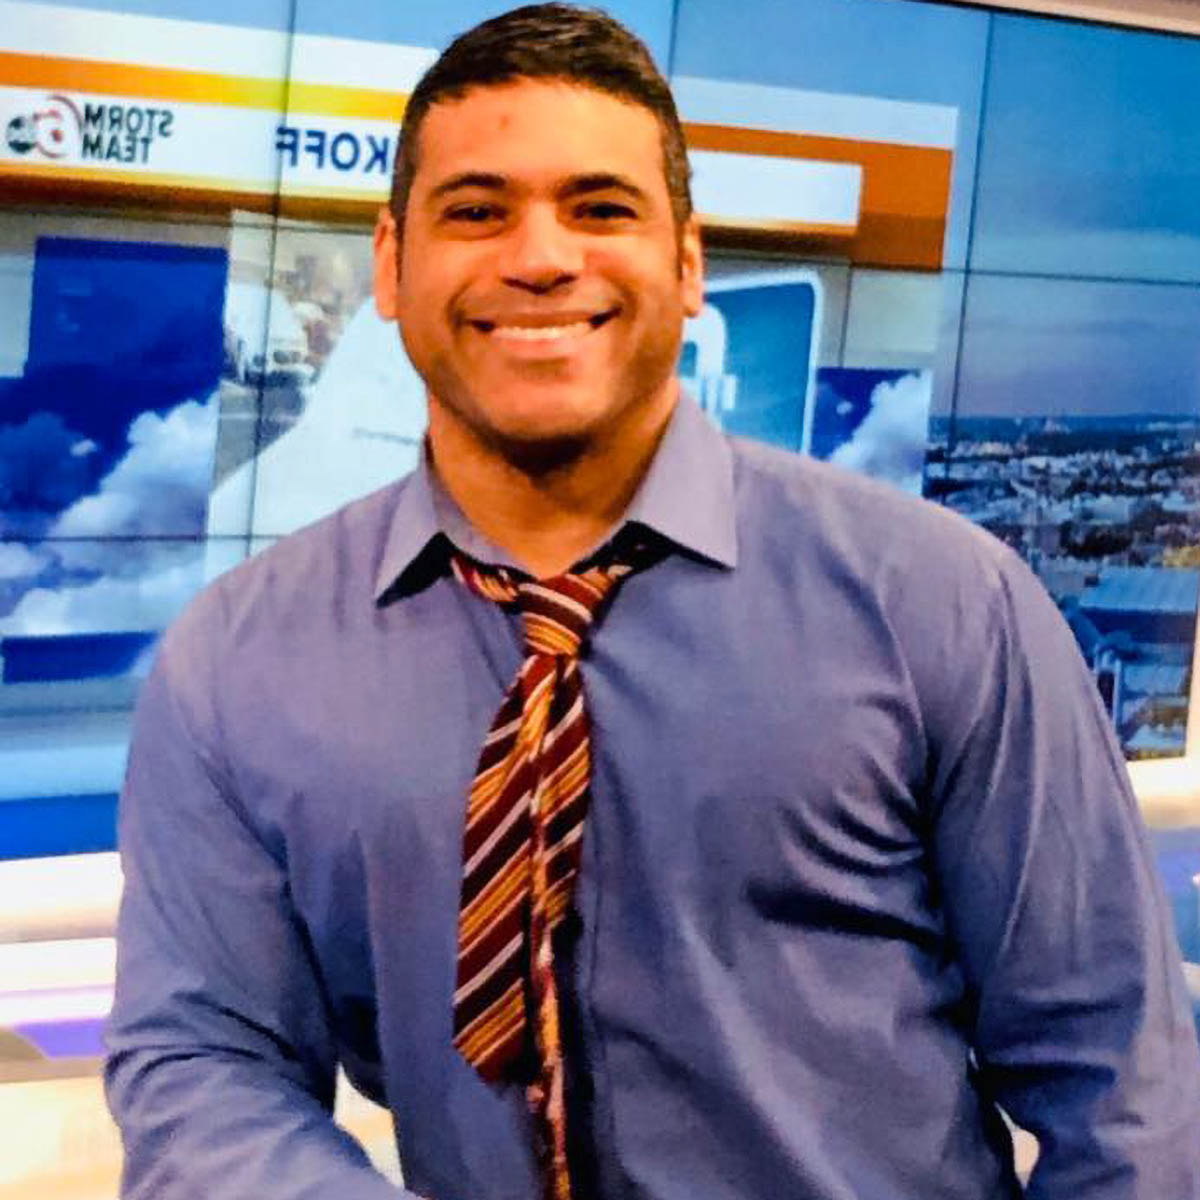 Marc Mullins services for WRTV News